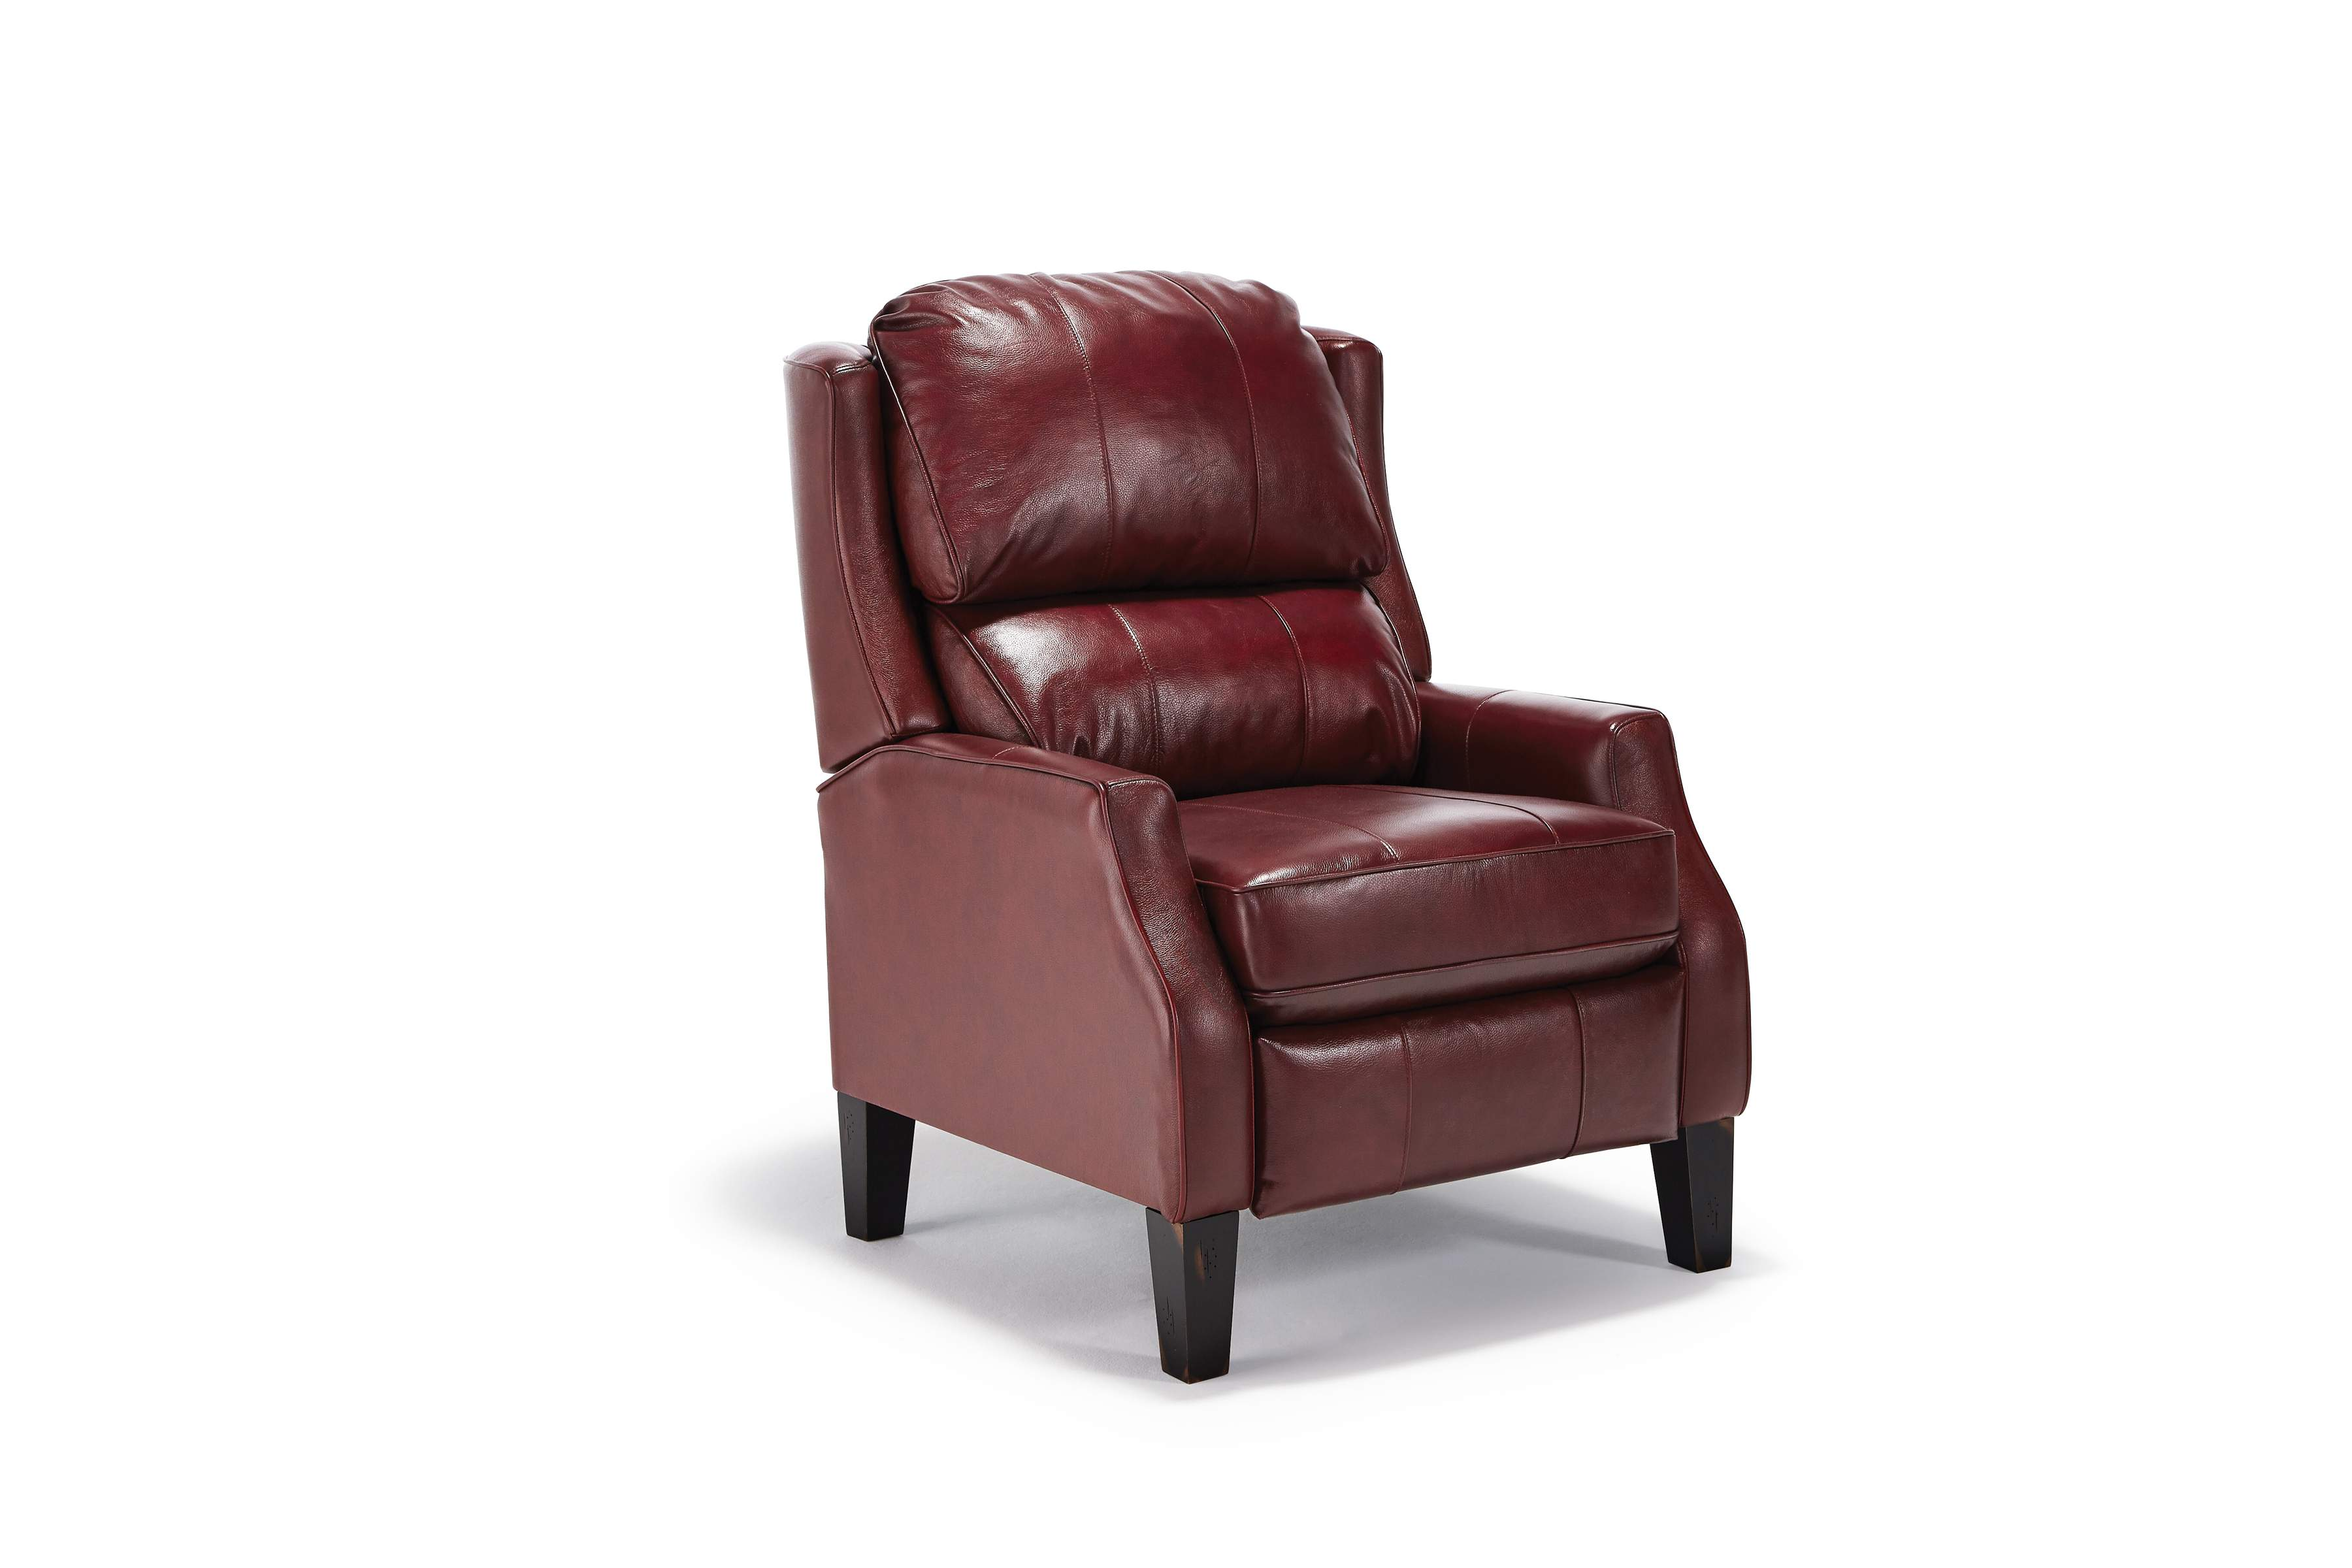 Best Home Furnishings Living Room Leather High Leg Recliner - Paulie Chair